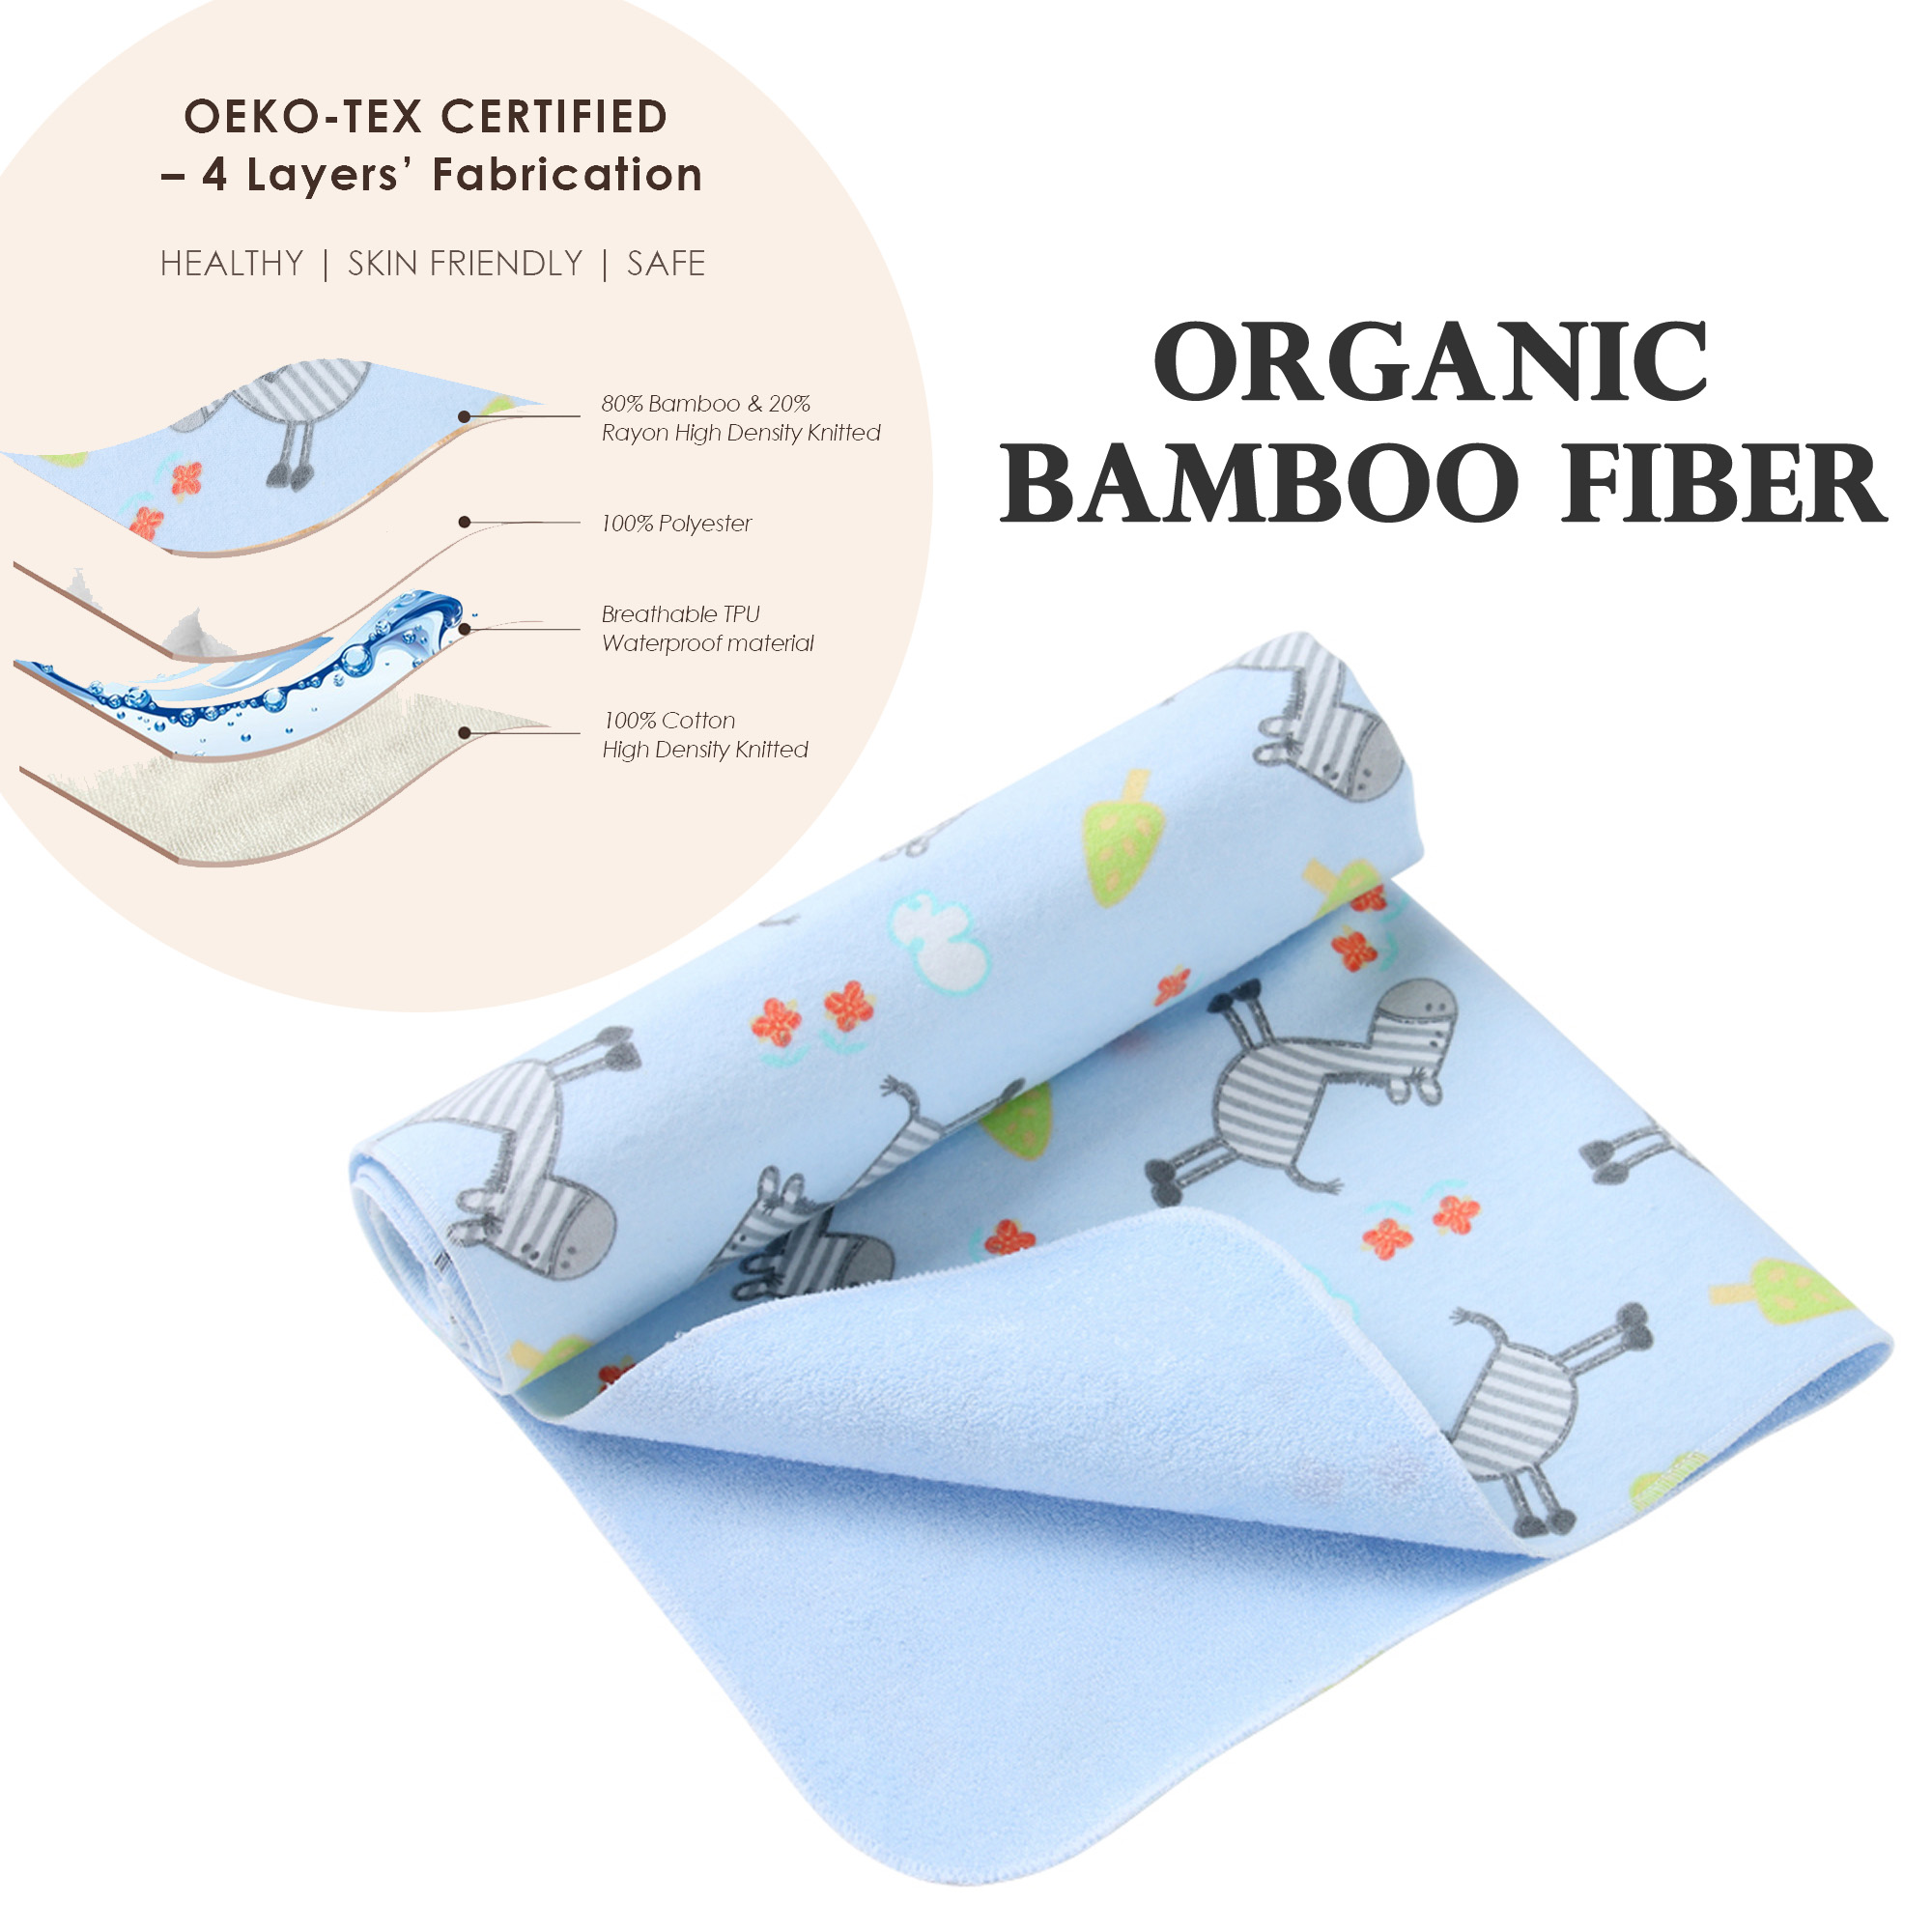 I-baby Organic Bamboo Baby Changing Pad, Toddler Waterproof Mat, Kids Breathable Urine Pad, Leak Proof Mattress Pad 50x70cm